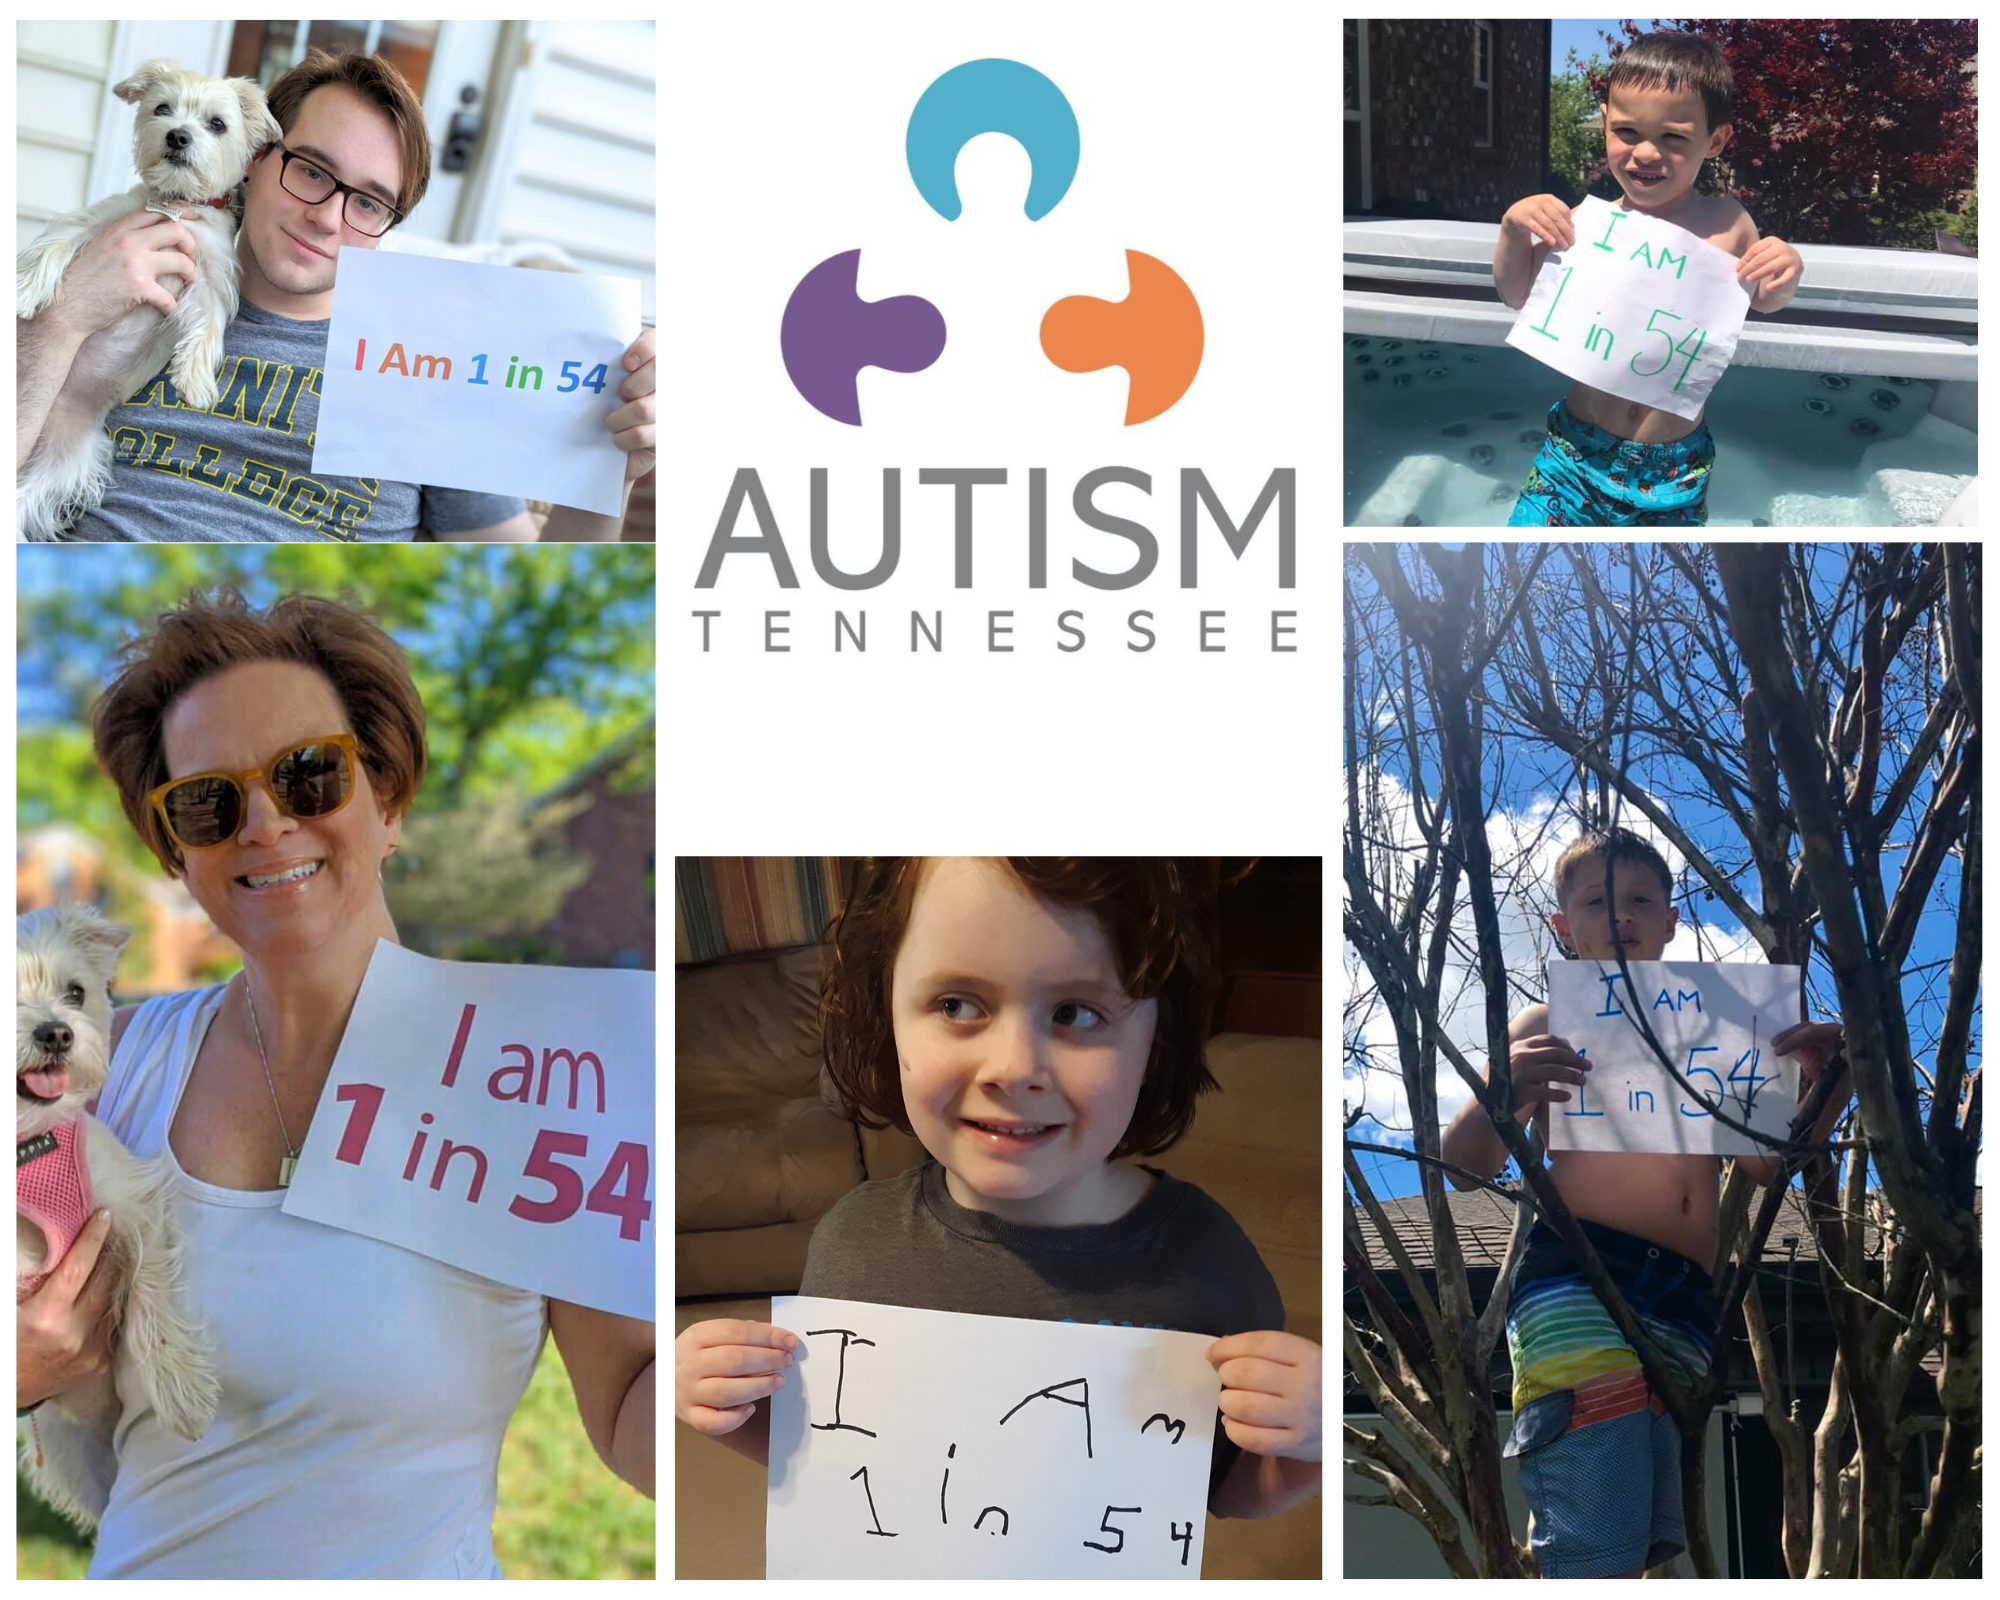 """AutismTN logo top center with images of 2 adults to the left, 1 child center bottom, and 2 children to the right, all holding signs that say """"I am 1 in 54"""""""